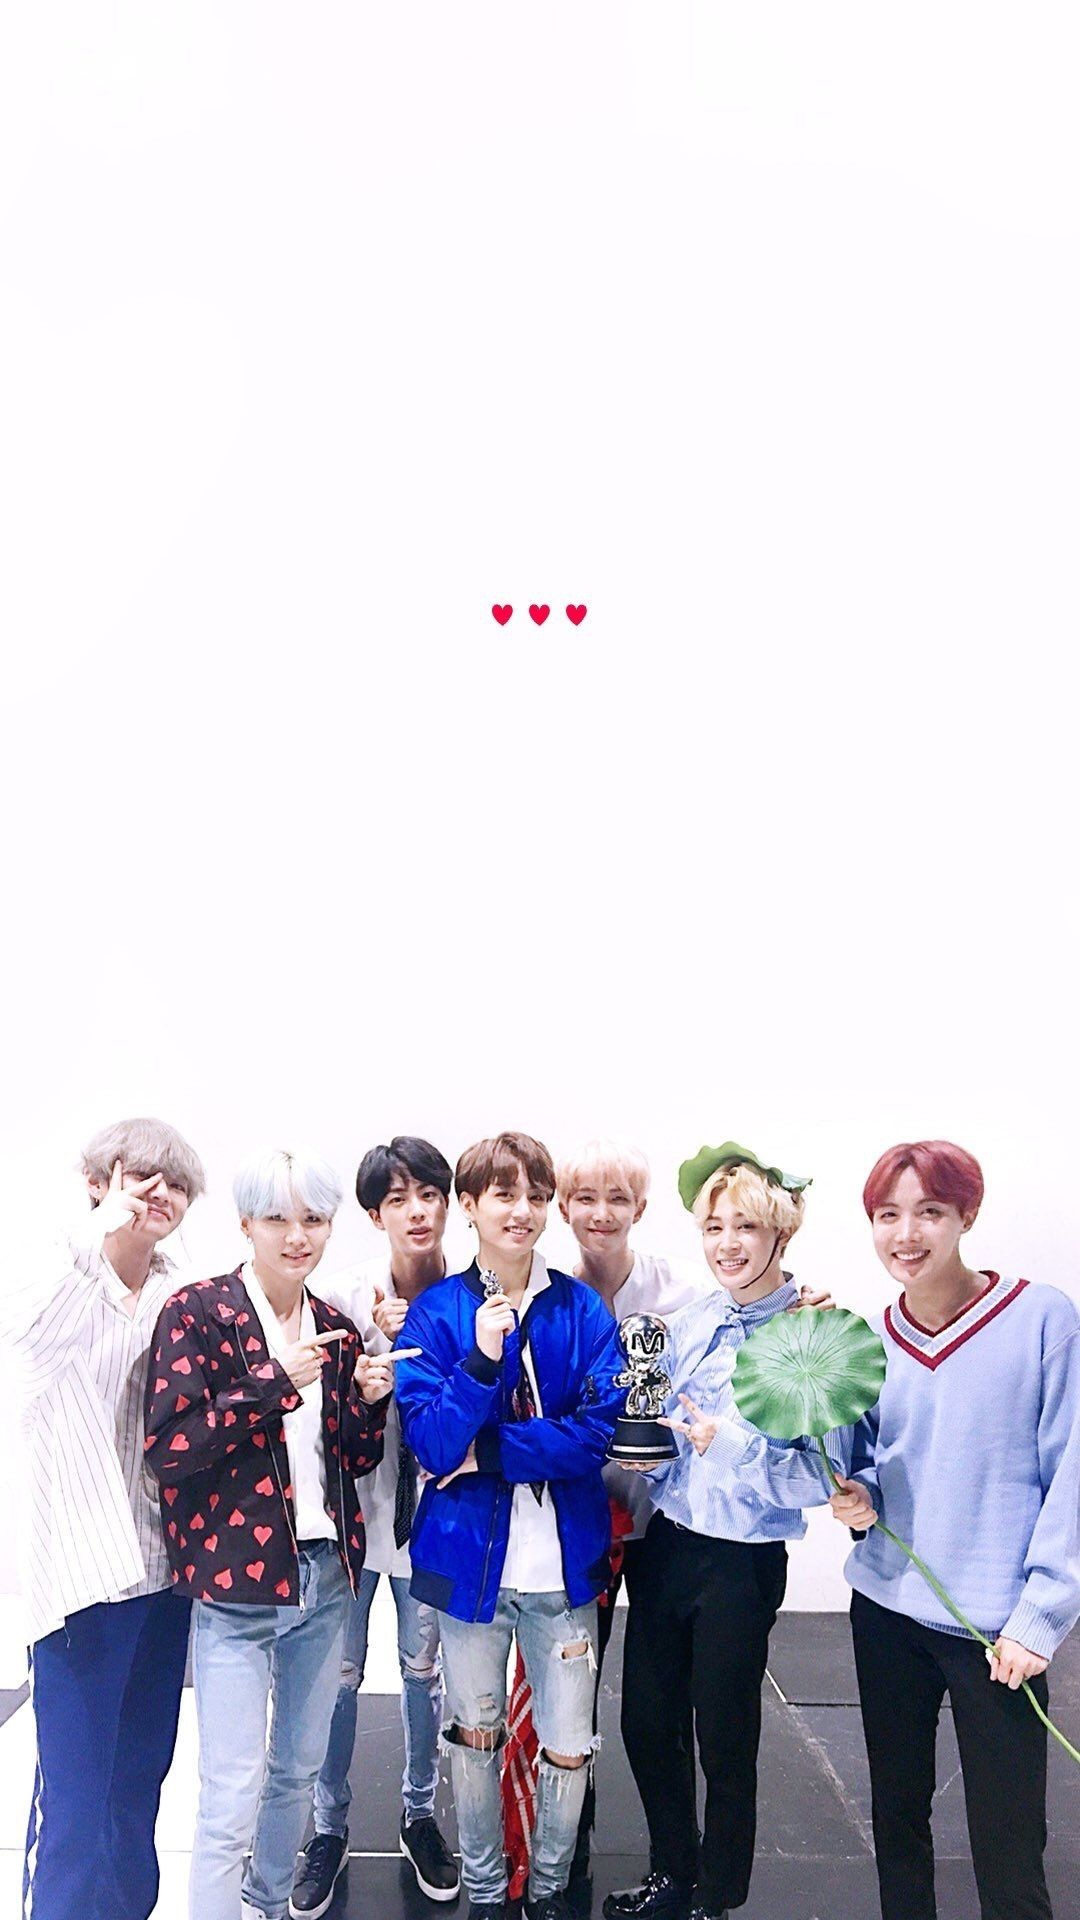 1080x1920 1920x1080 V Suga Rap Monster Jungkook Jin Jimin J-Hope BTS Bangtan Boys  1080p HD Wallpaper